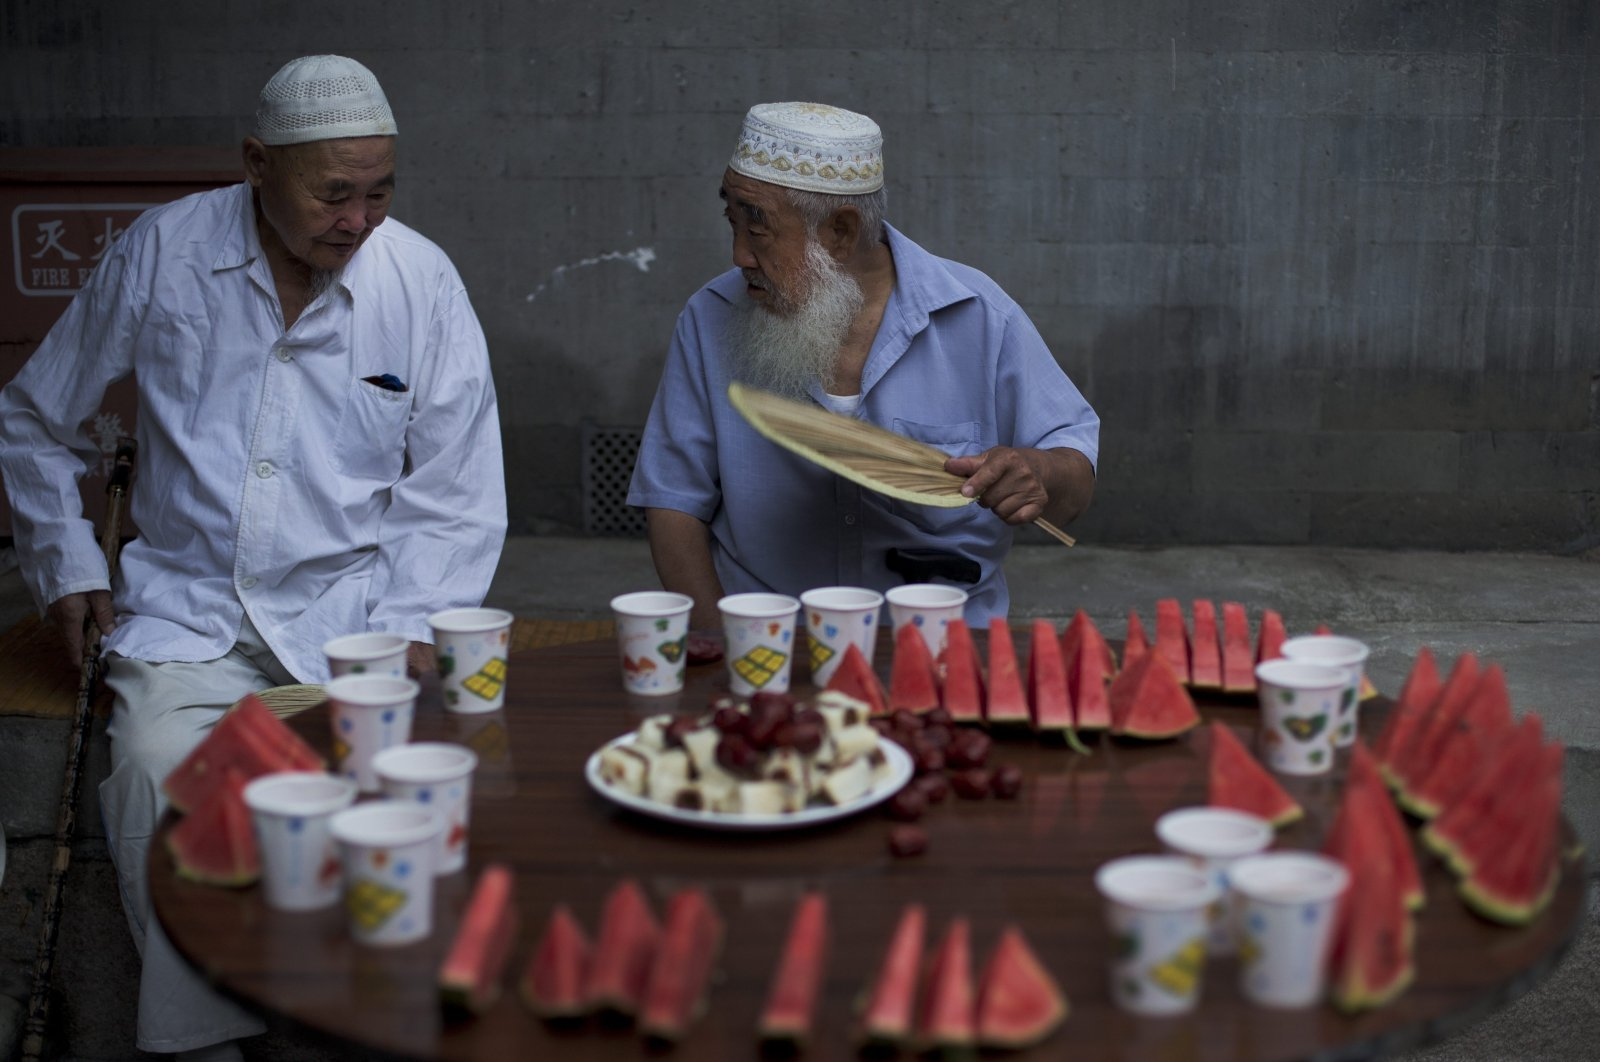 Chinese Muslim men chat as they wait for the time to break their fast during the Muslim holy month of Ramadan at Niujie Mosque, the oldest and largest mosque in Beijing, China, July 2, 2014. (AP Photo)